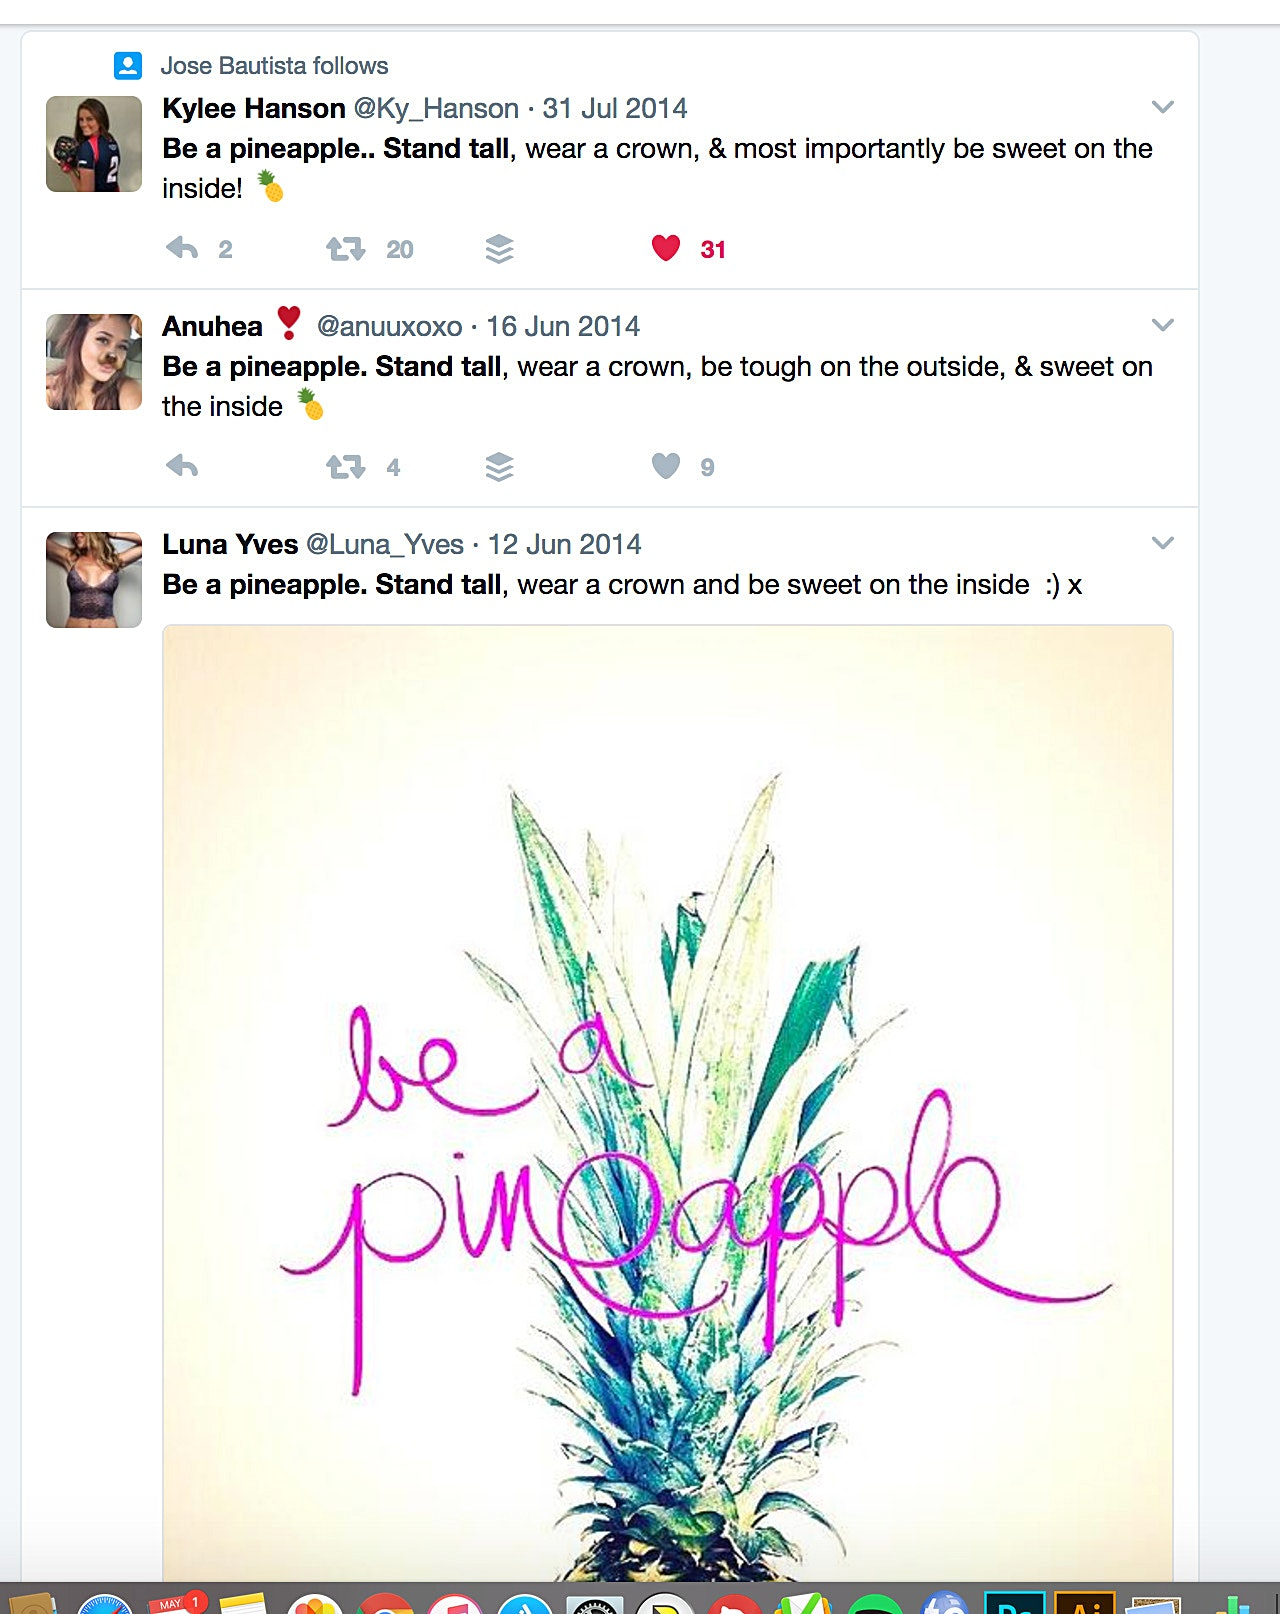 Be a pineapple - Twitter 2014 Image